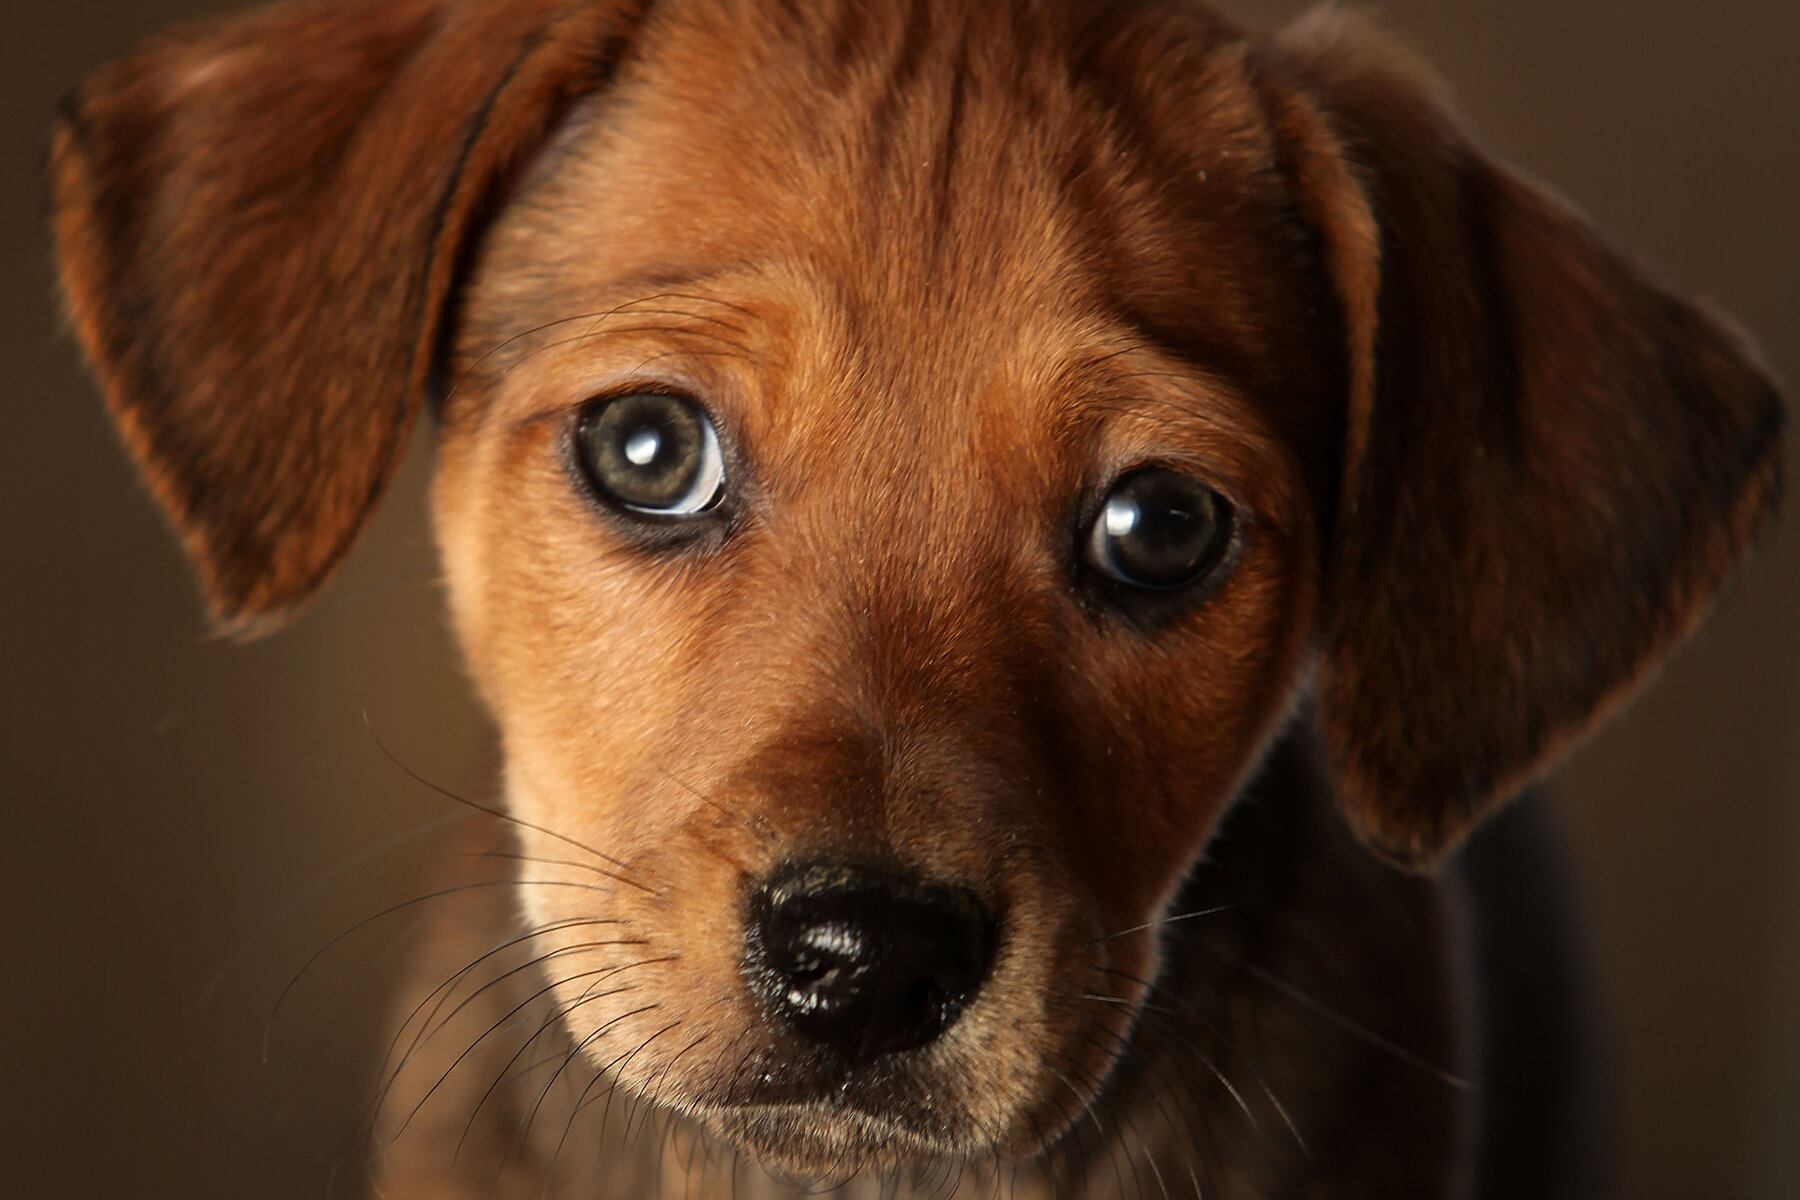 Those Puppy Dog Eyes You Can't Resist? Thank Evolution - The New York Times